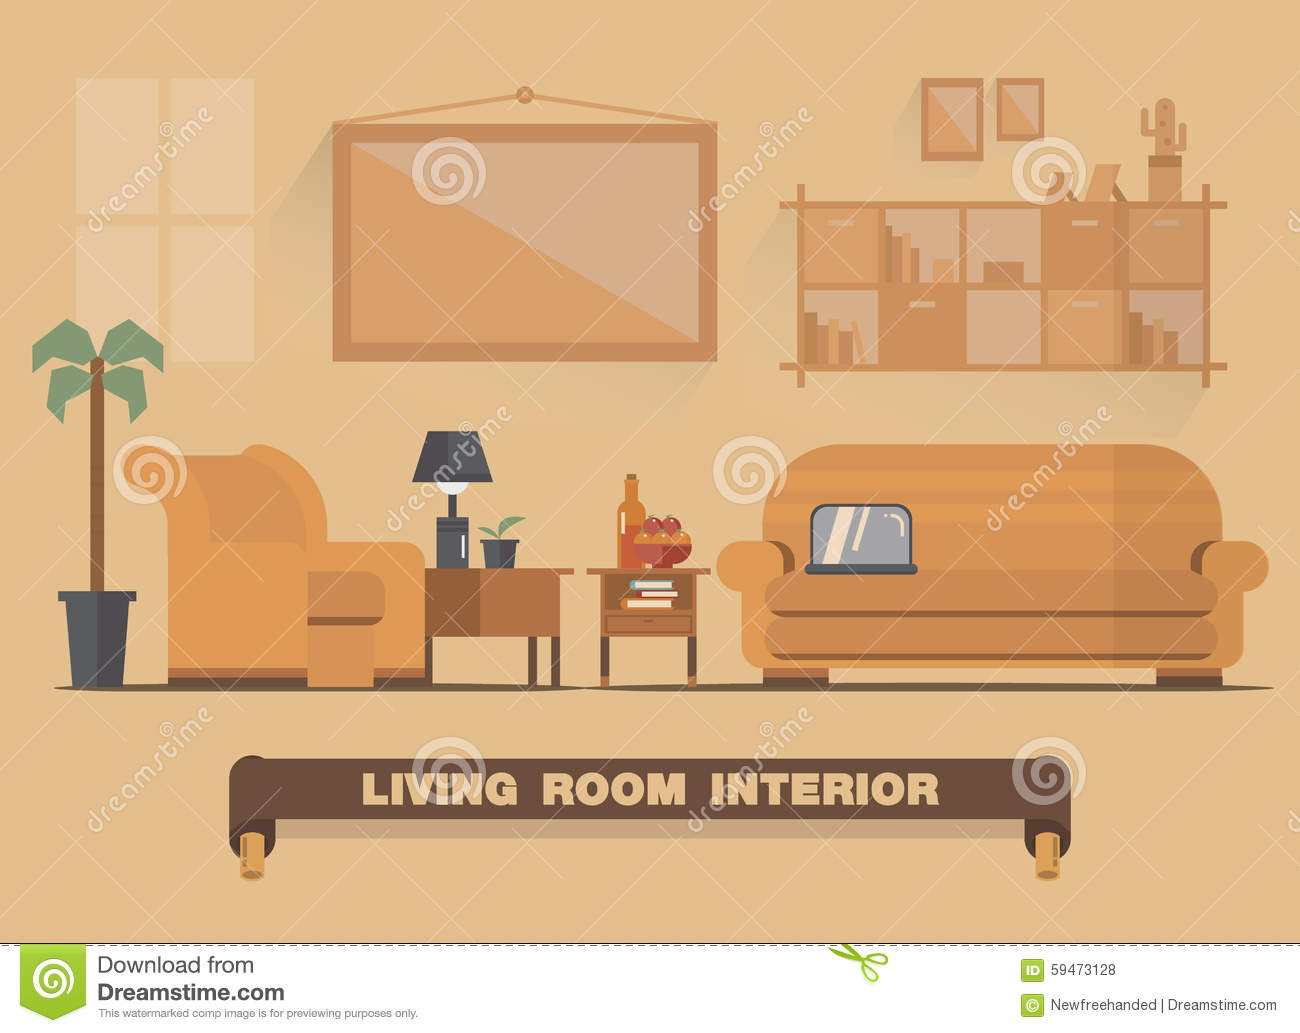 Living Room Interior Element Flat Design Earth Tone Stock Vector Image 59473128